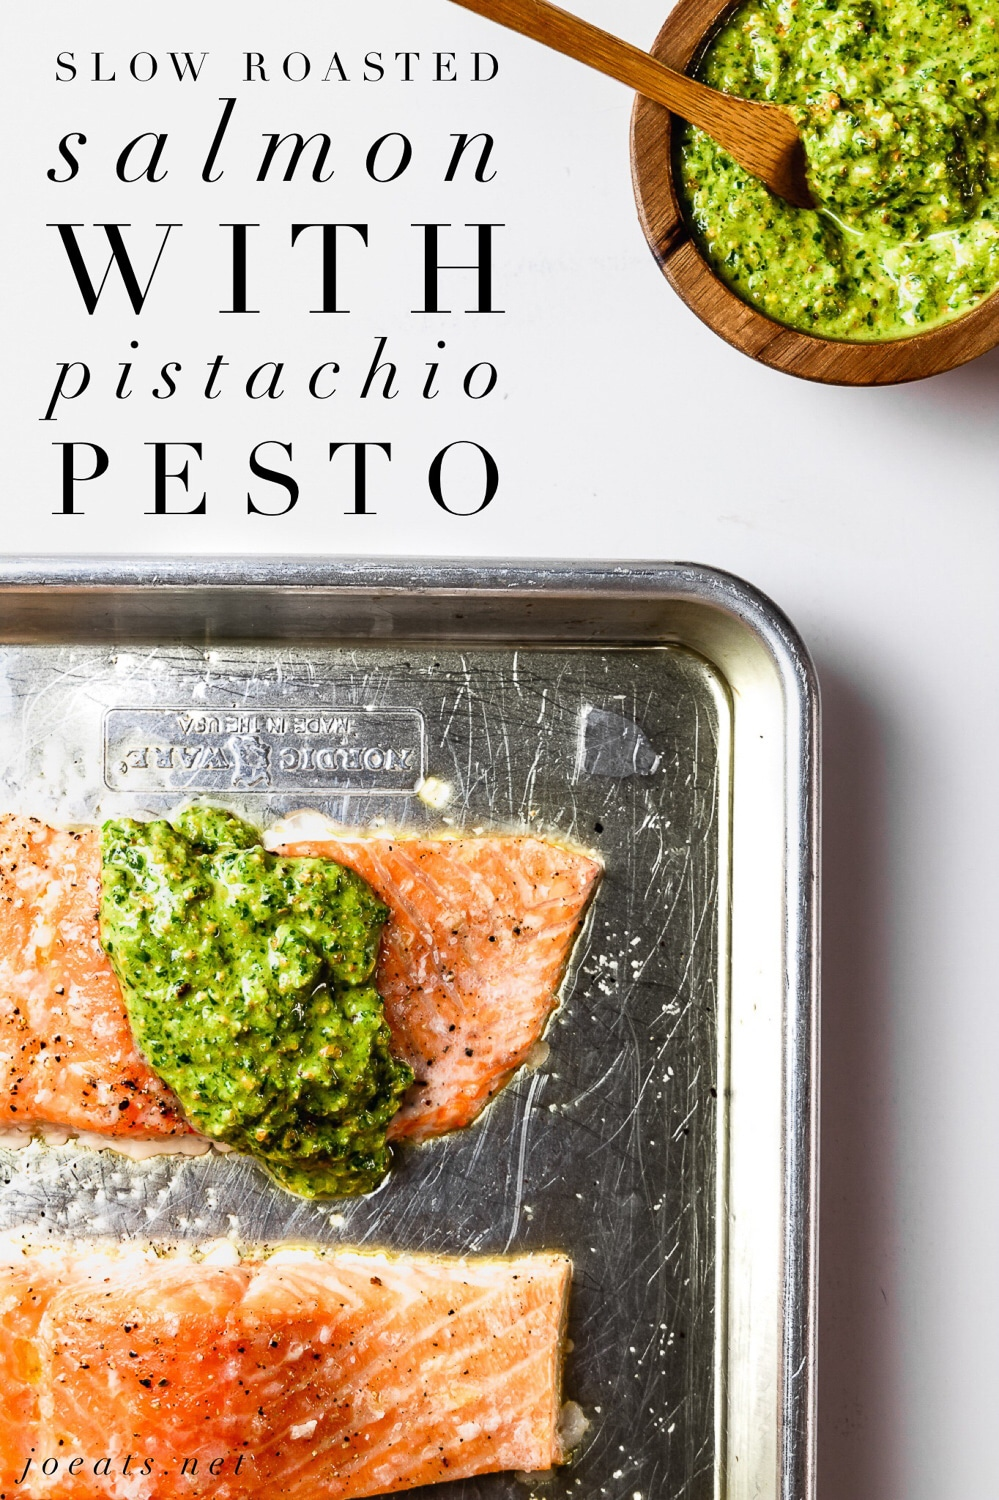 Slow roasted salmon is an easy, foolproof way to cook moist, delicious fish. Pair it with a quick and vibrant pistachio pesto and you've got dinner without a lot of fuss. #joeats #slowroastedfish #weeknightdinner #healthydinner #easydinner